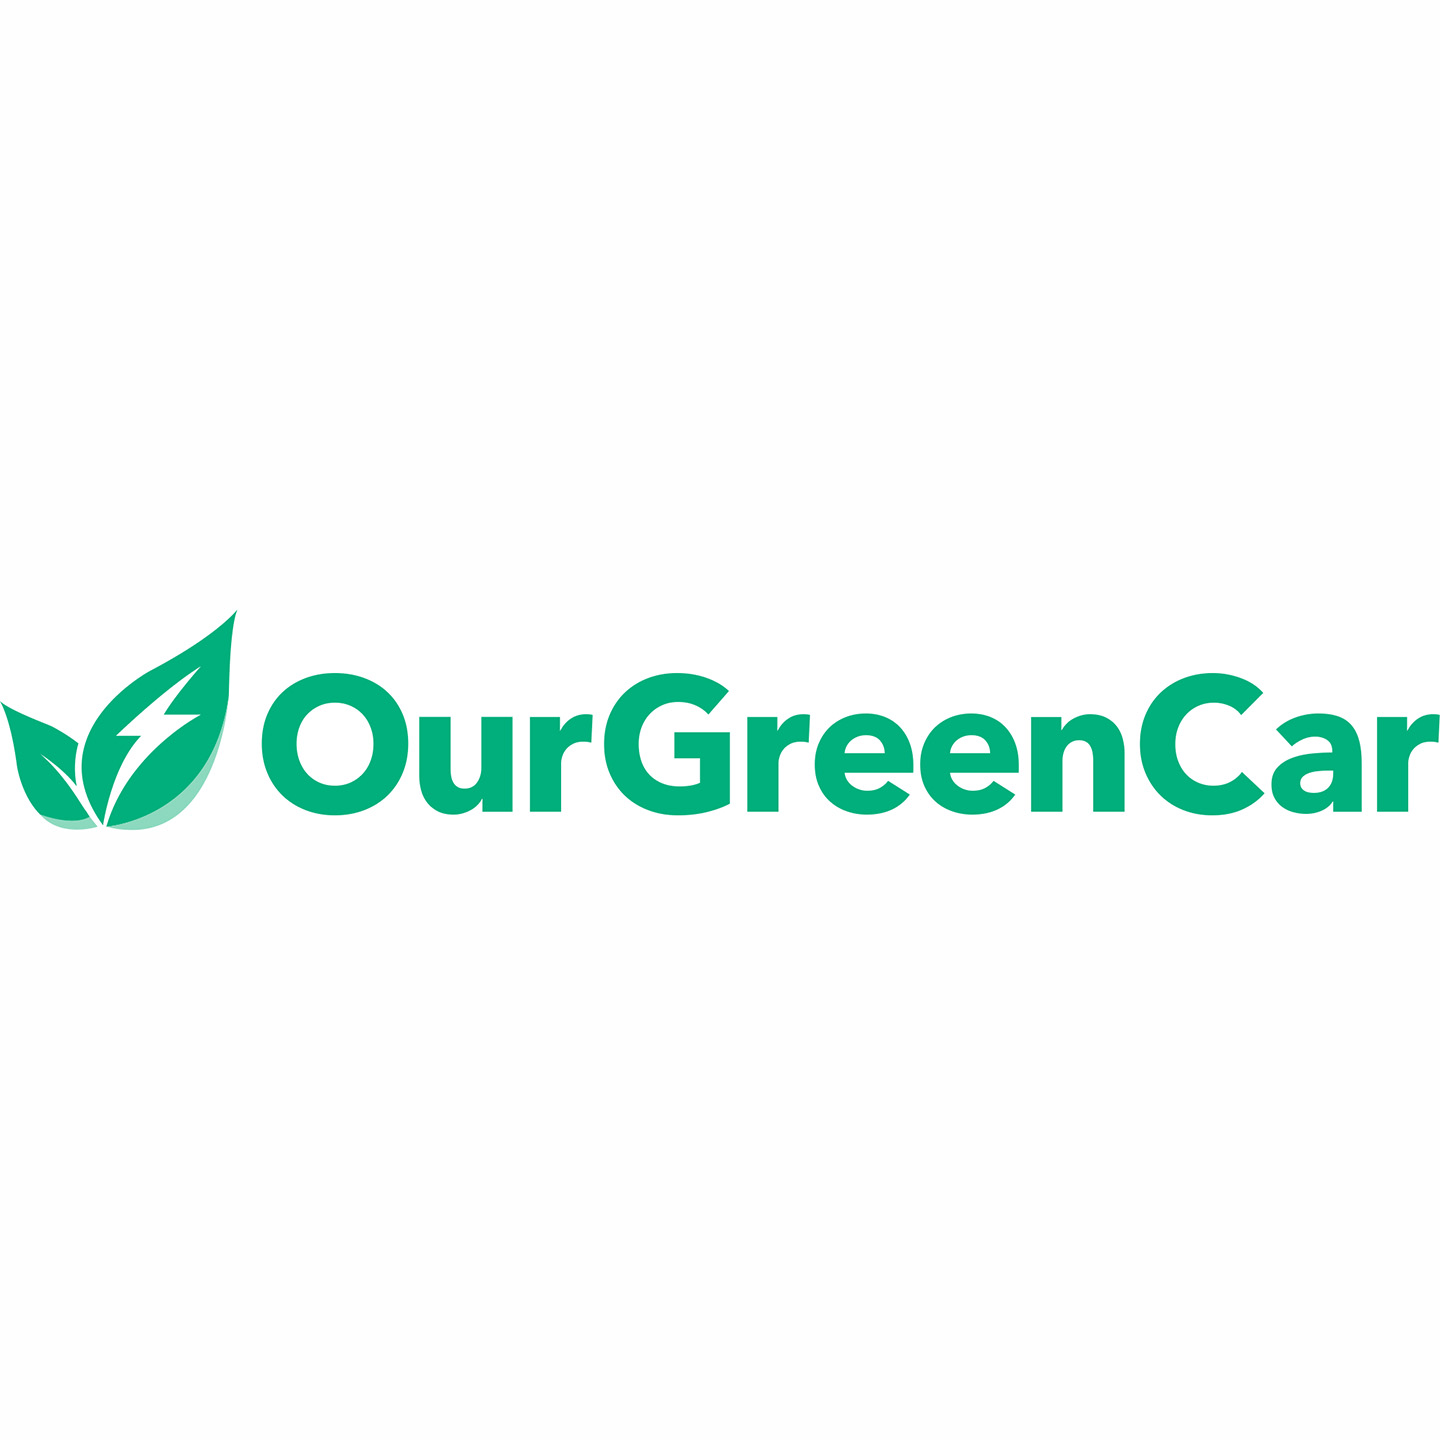 Logotyp OurGreenCar